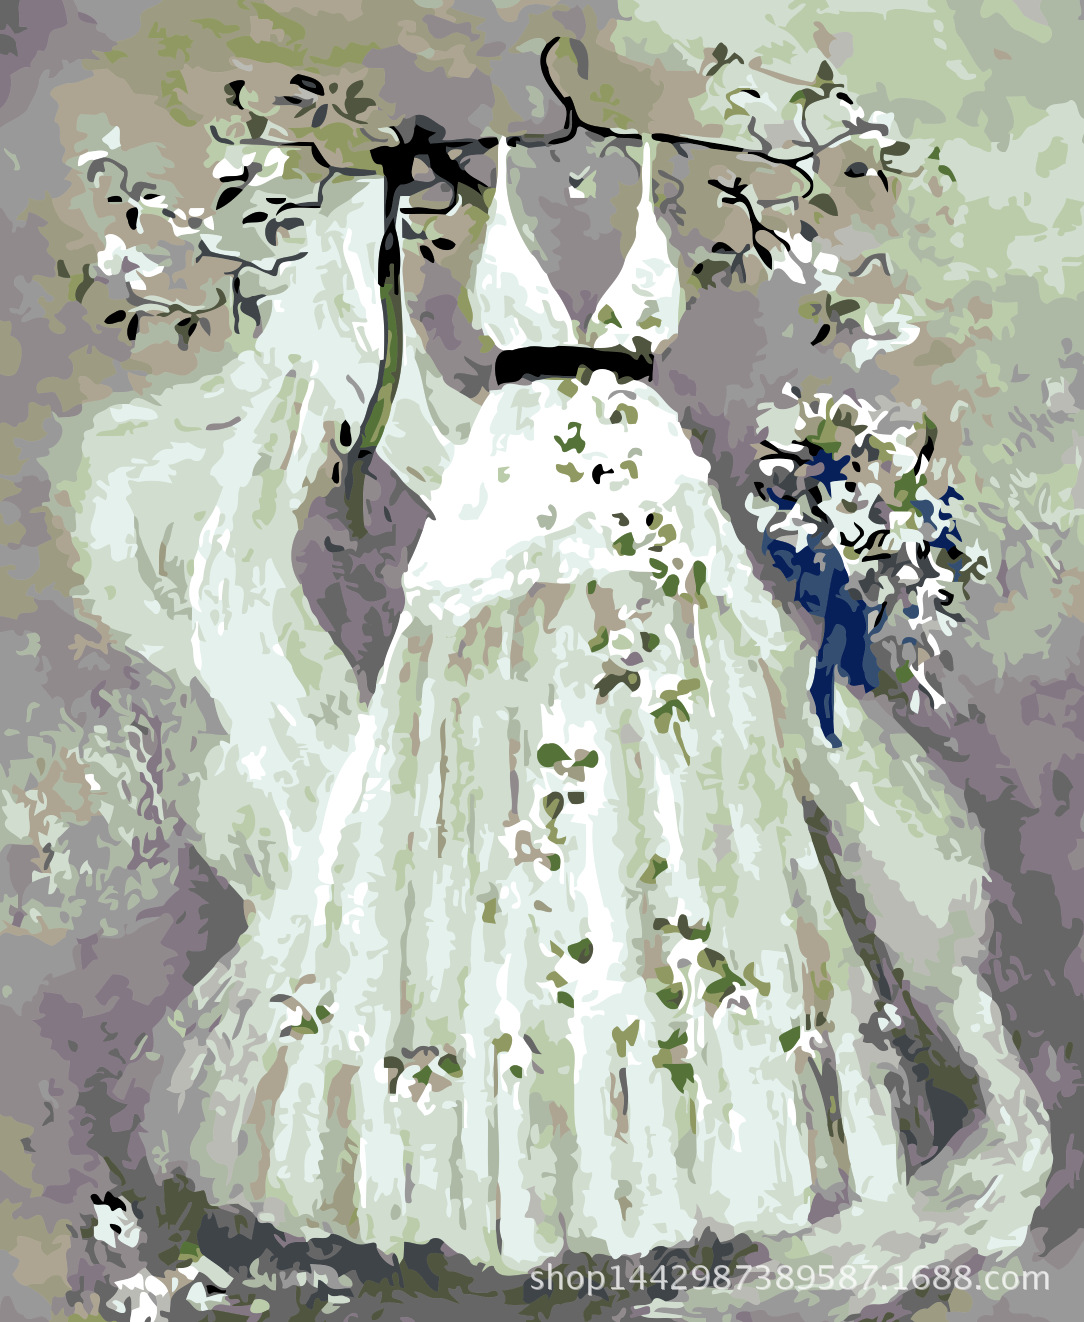 Product Namea Dream Wedding Dress Size 40 50cm Modity Accessories Acrylic Paint Brush 3 Hook Drawings: Abstract Art Wedding Dress At Websimilar.org